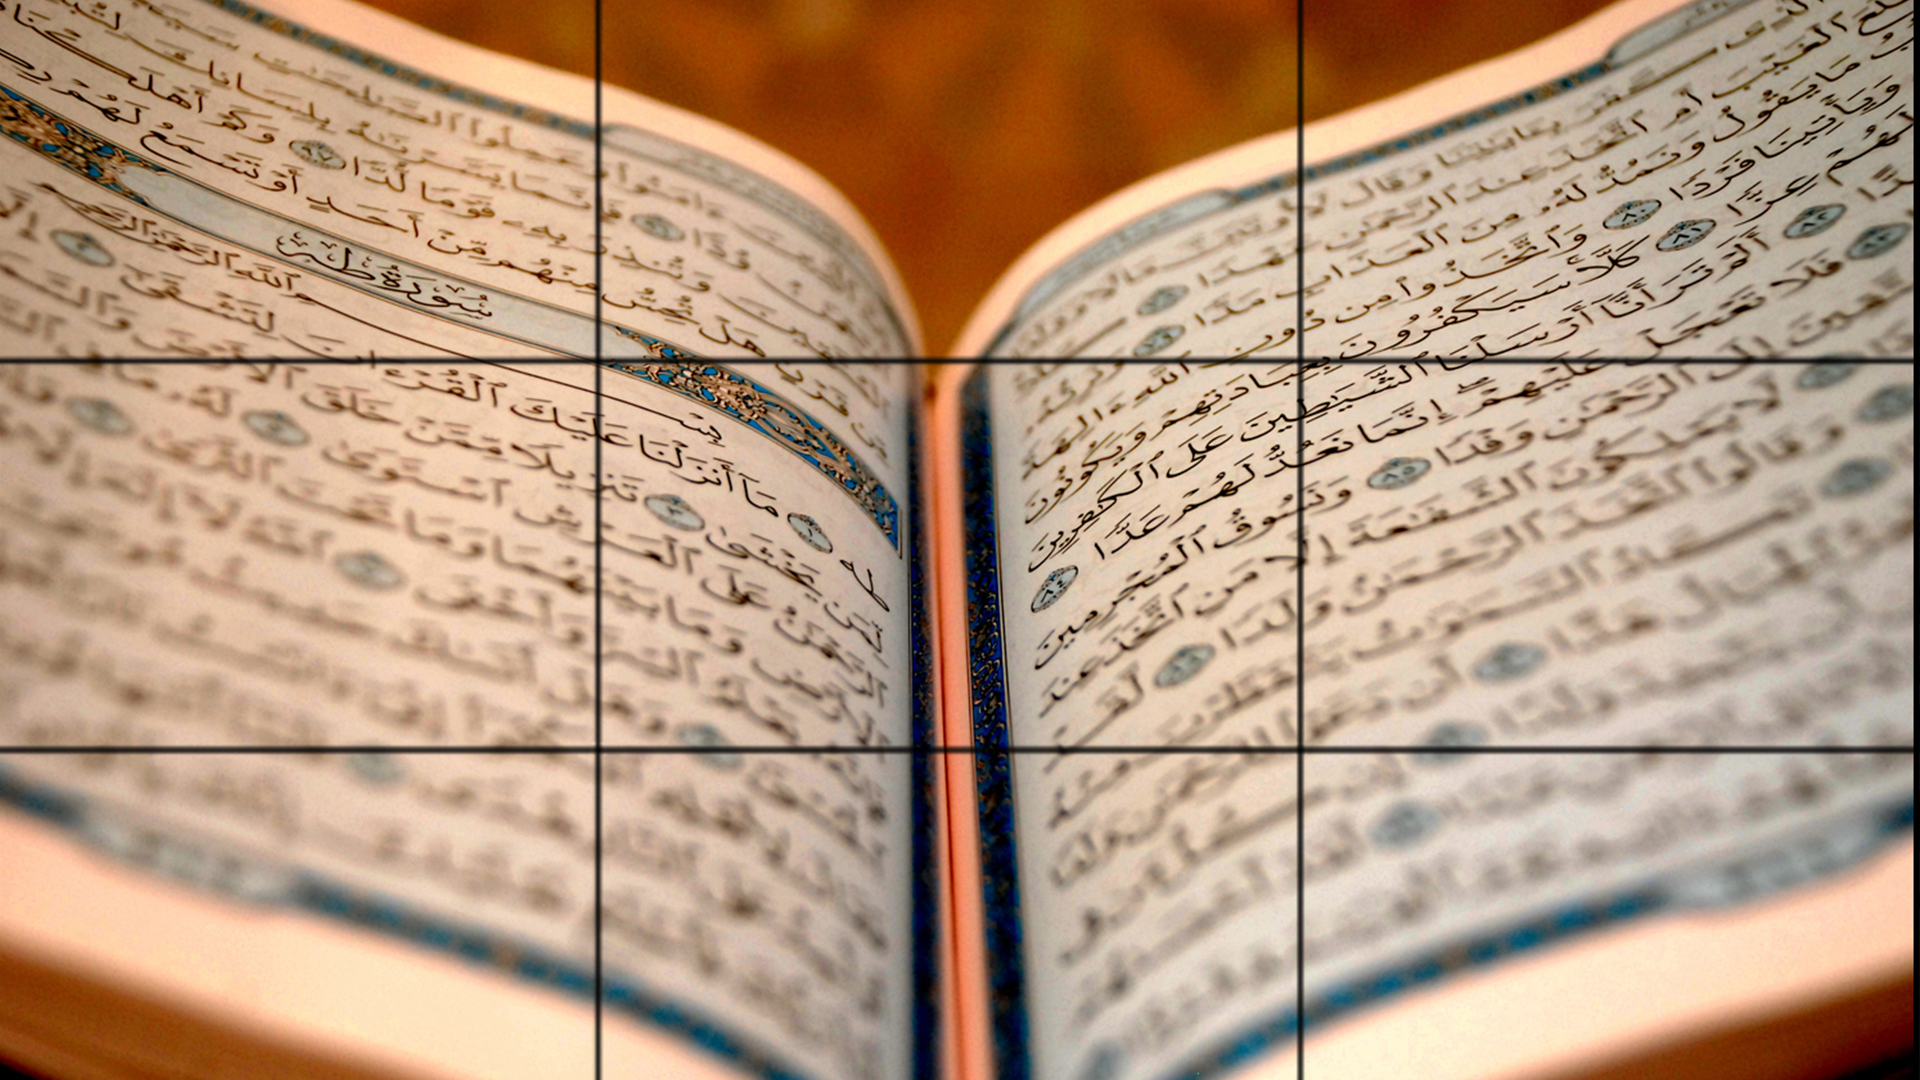 Photo of Course on Tajweed principles planned in Switzerland